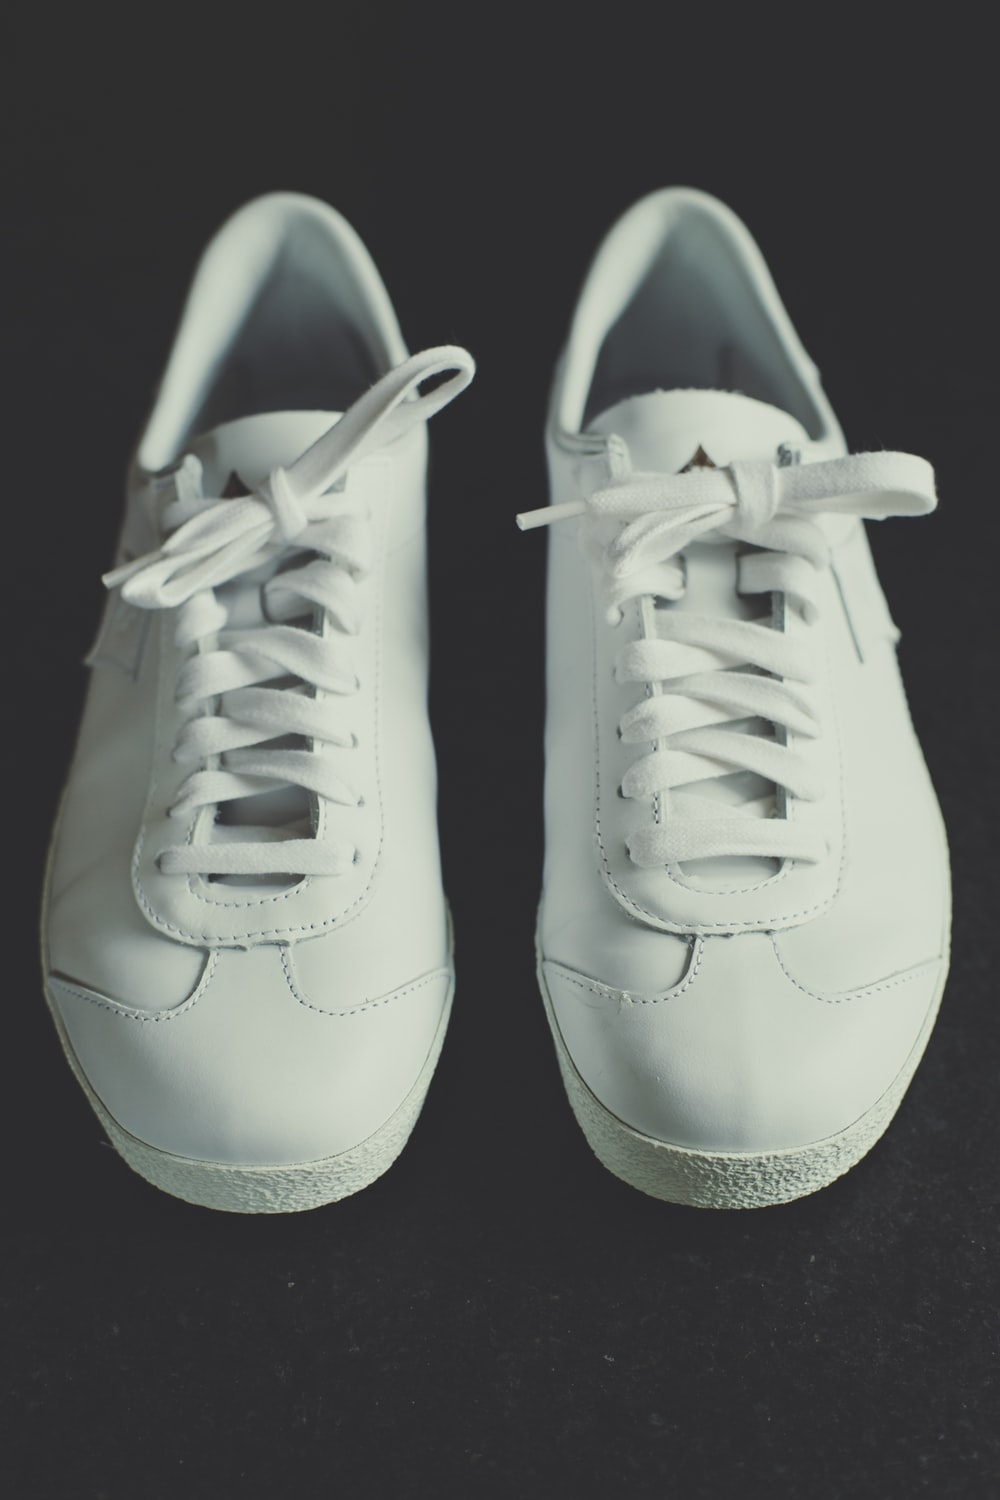 pair of white low-top shoes